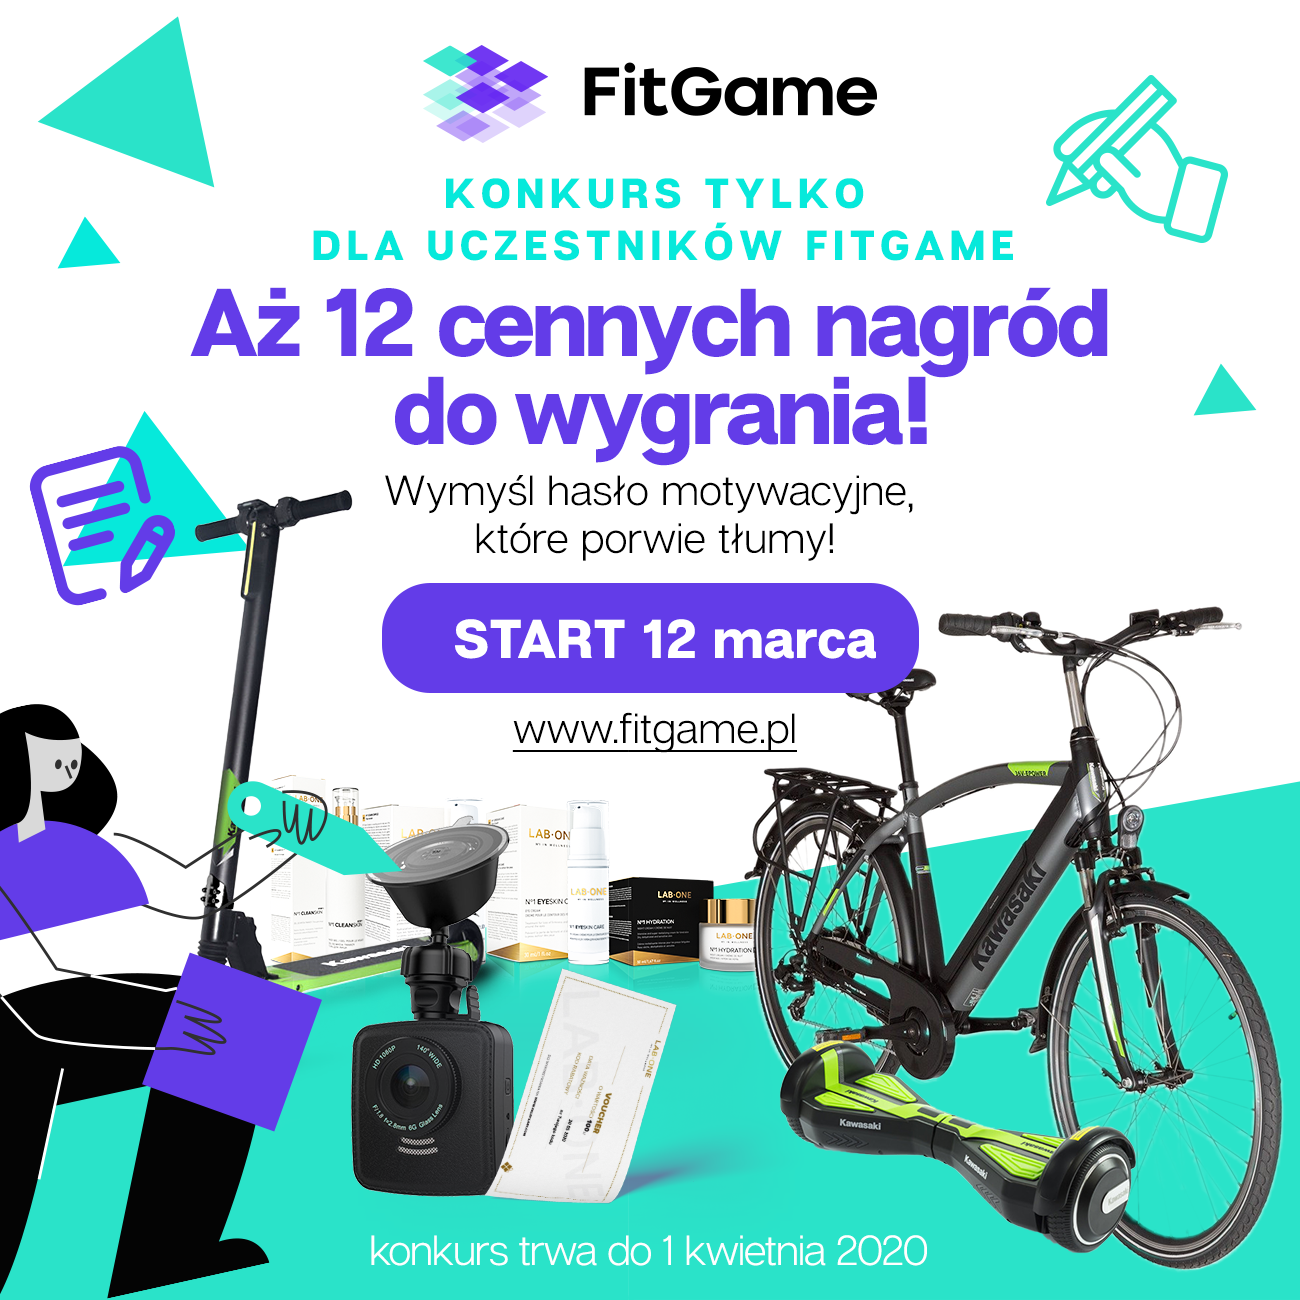 FitGame